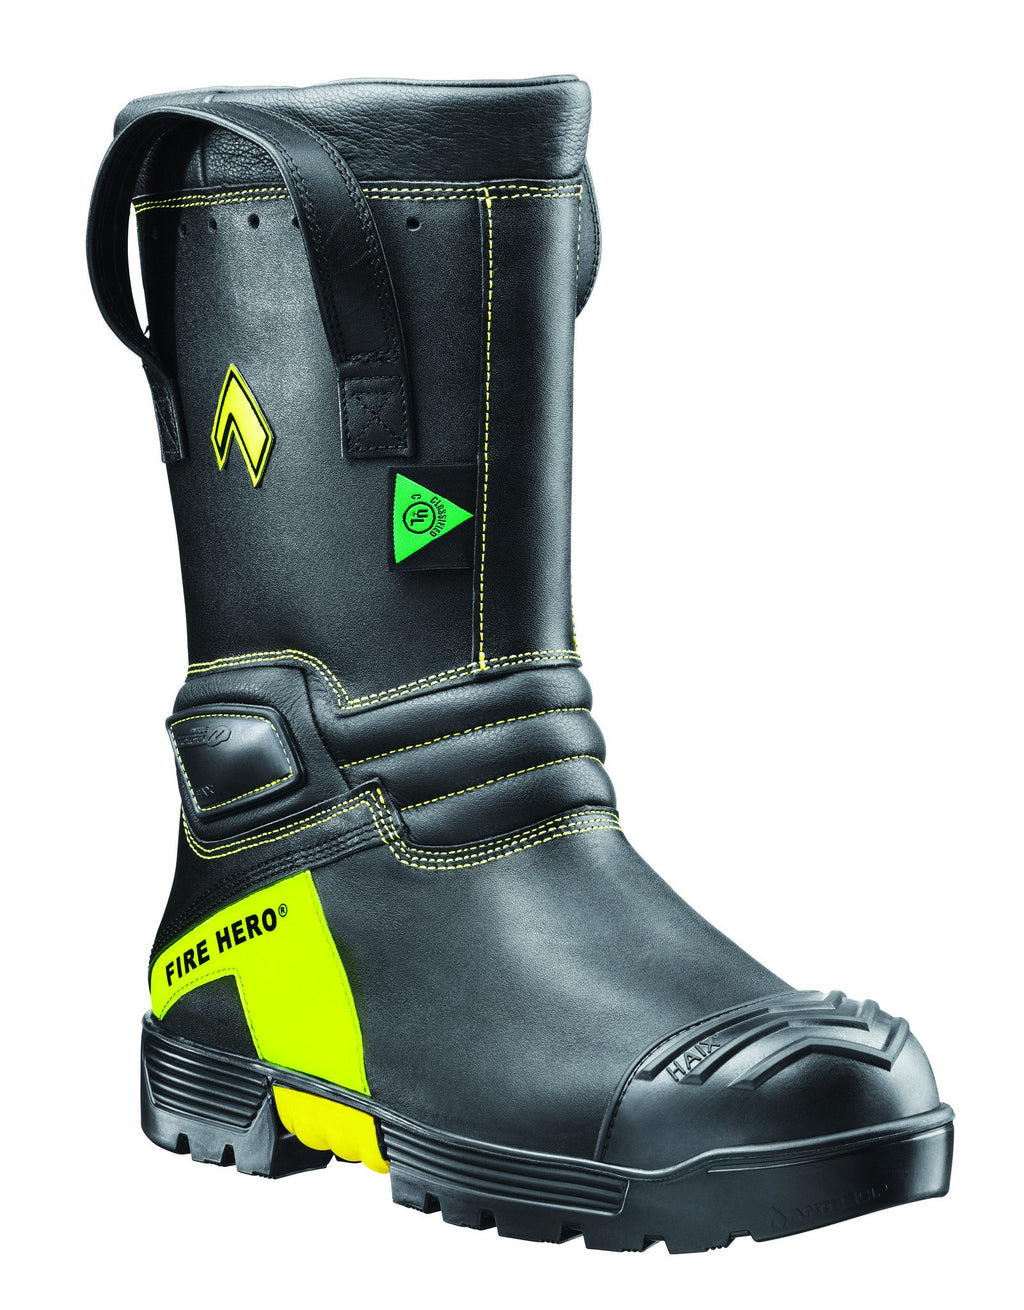 Haix Fire Hero Xtreme Boots - Ladies - mtrsuperstore